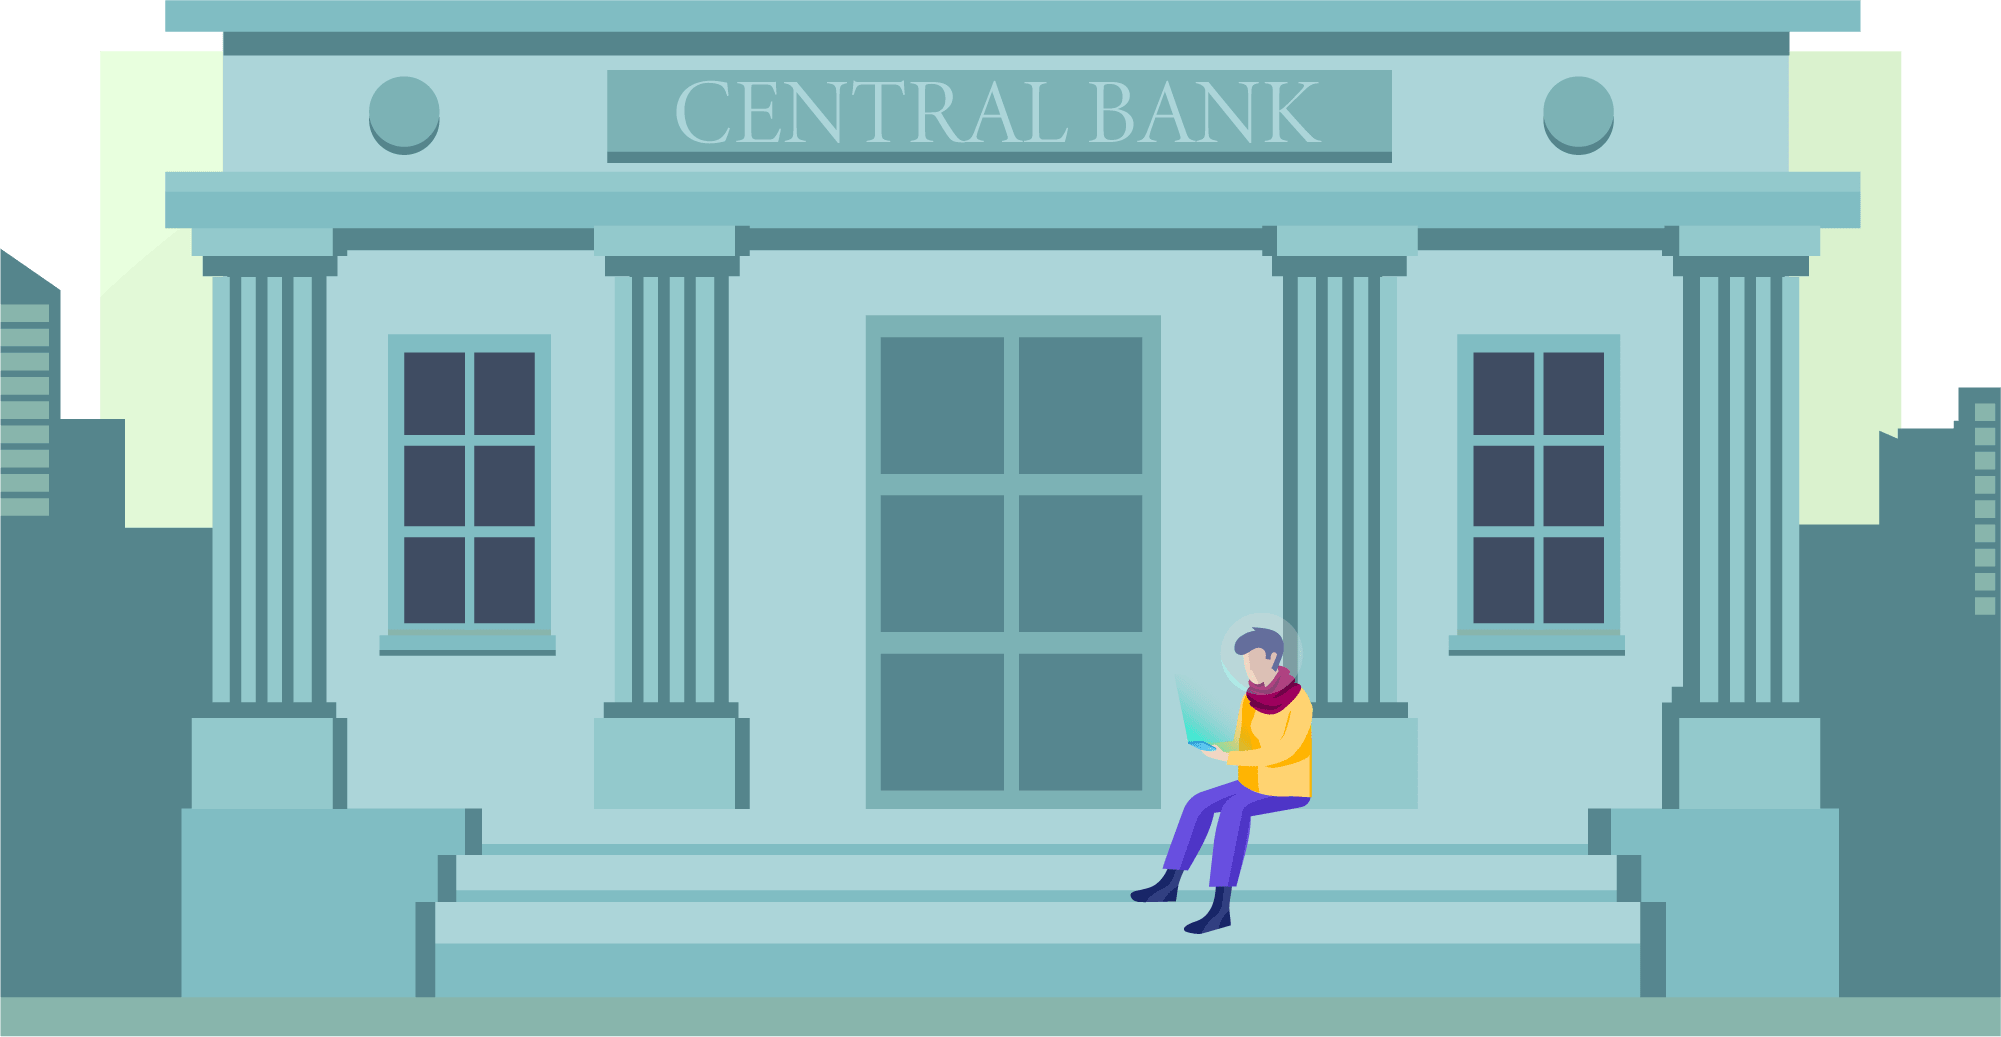 Criptomoedas estatais no central bank